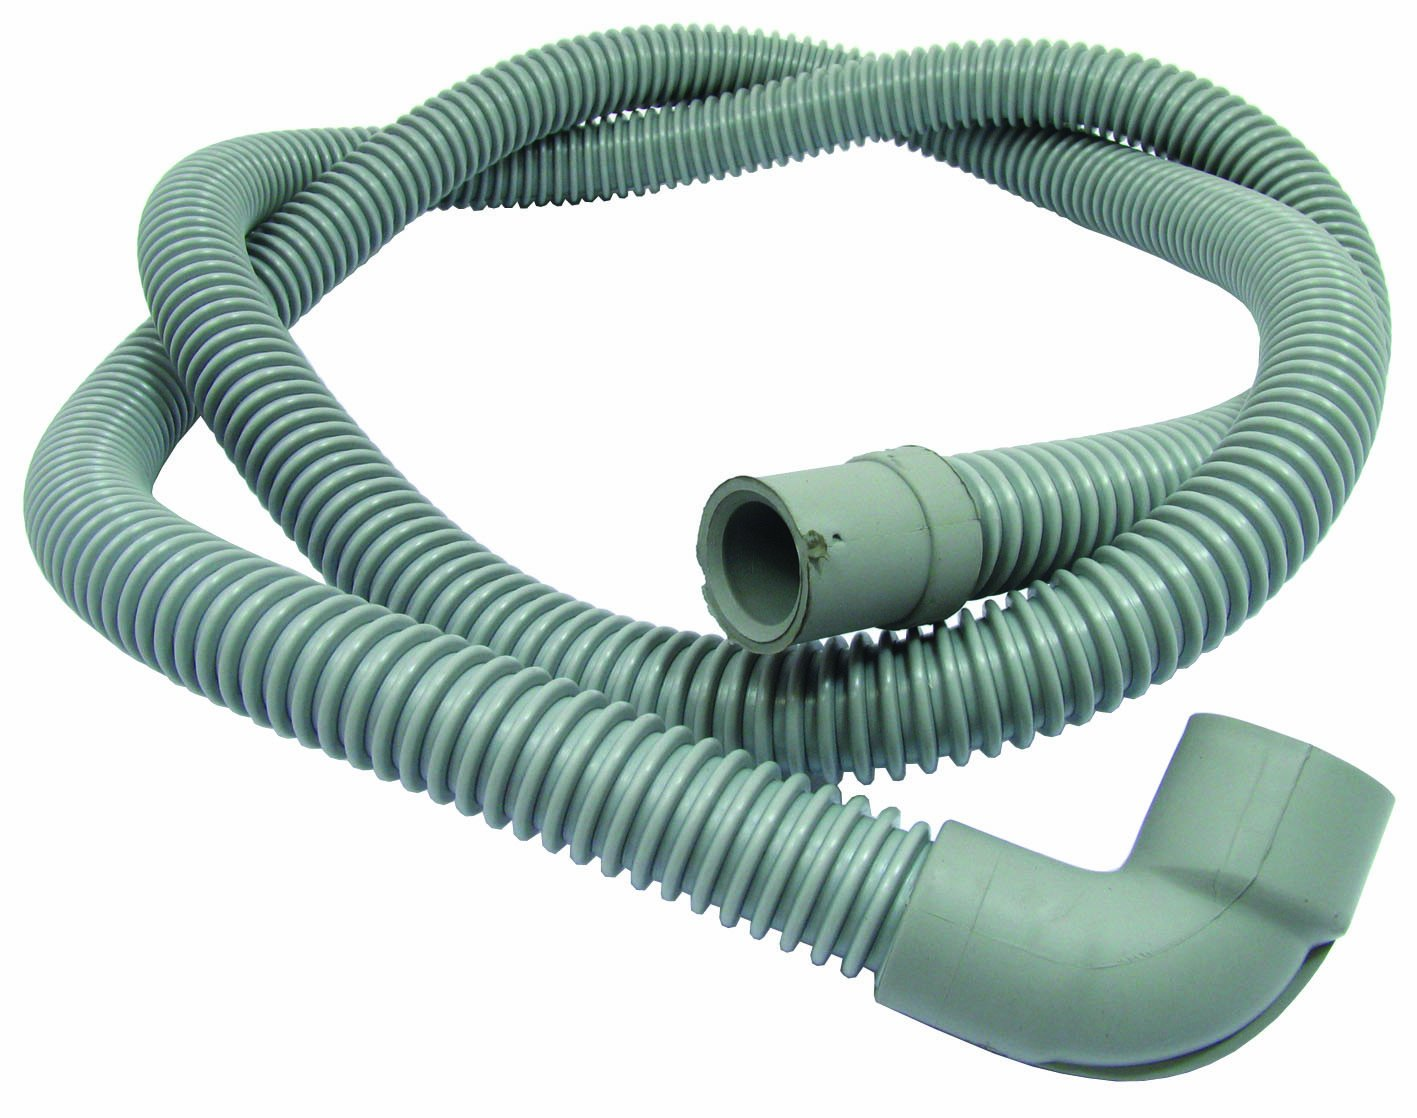 Philco Washing Machine Drain Outlet Hose to Sink 1860mm